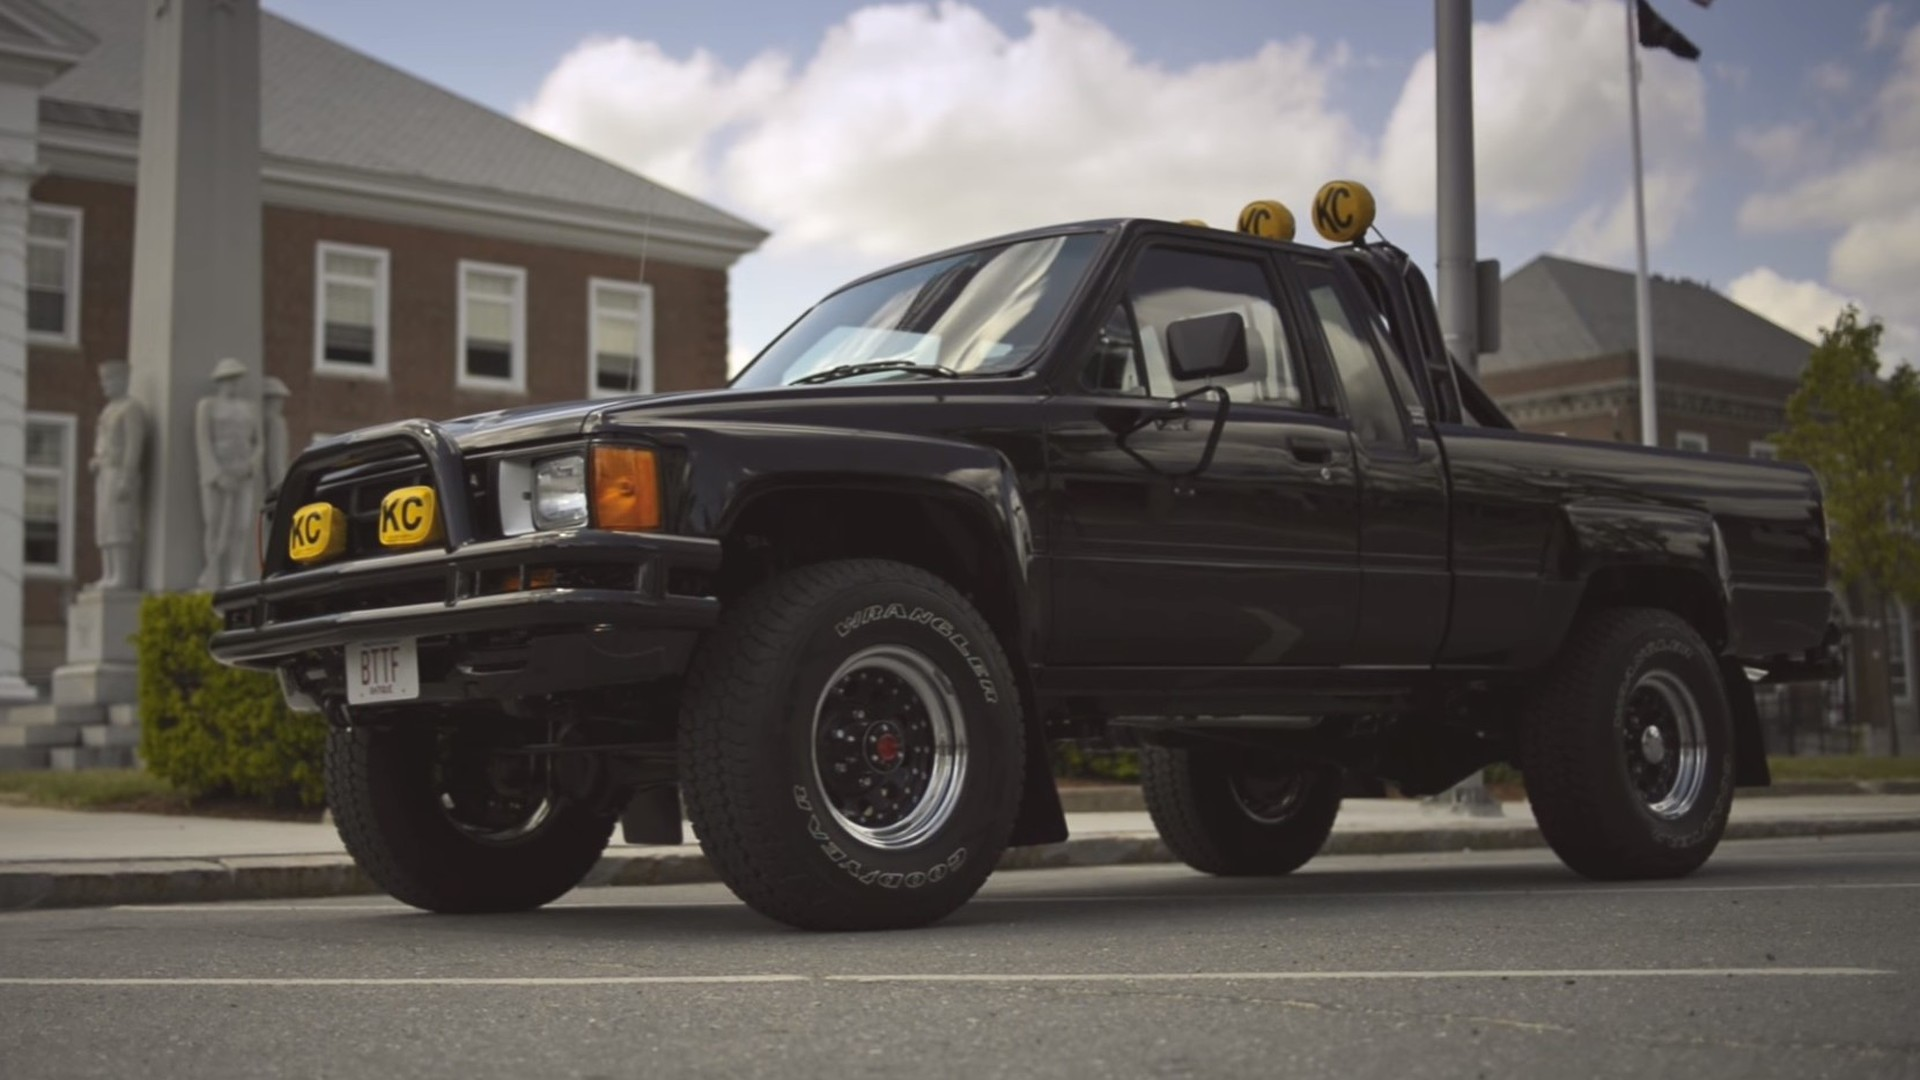 Marty Mcfly Truck >> Marty Mcfly S Truck Looks Like It Traveled Back To The Future